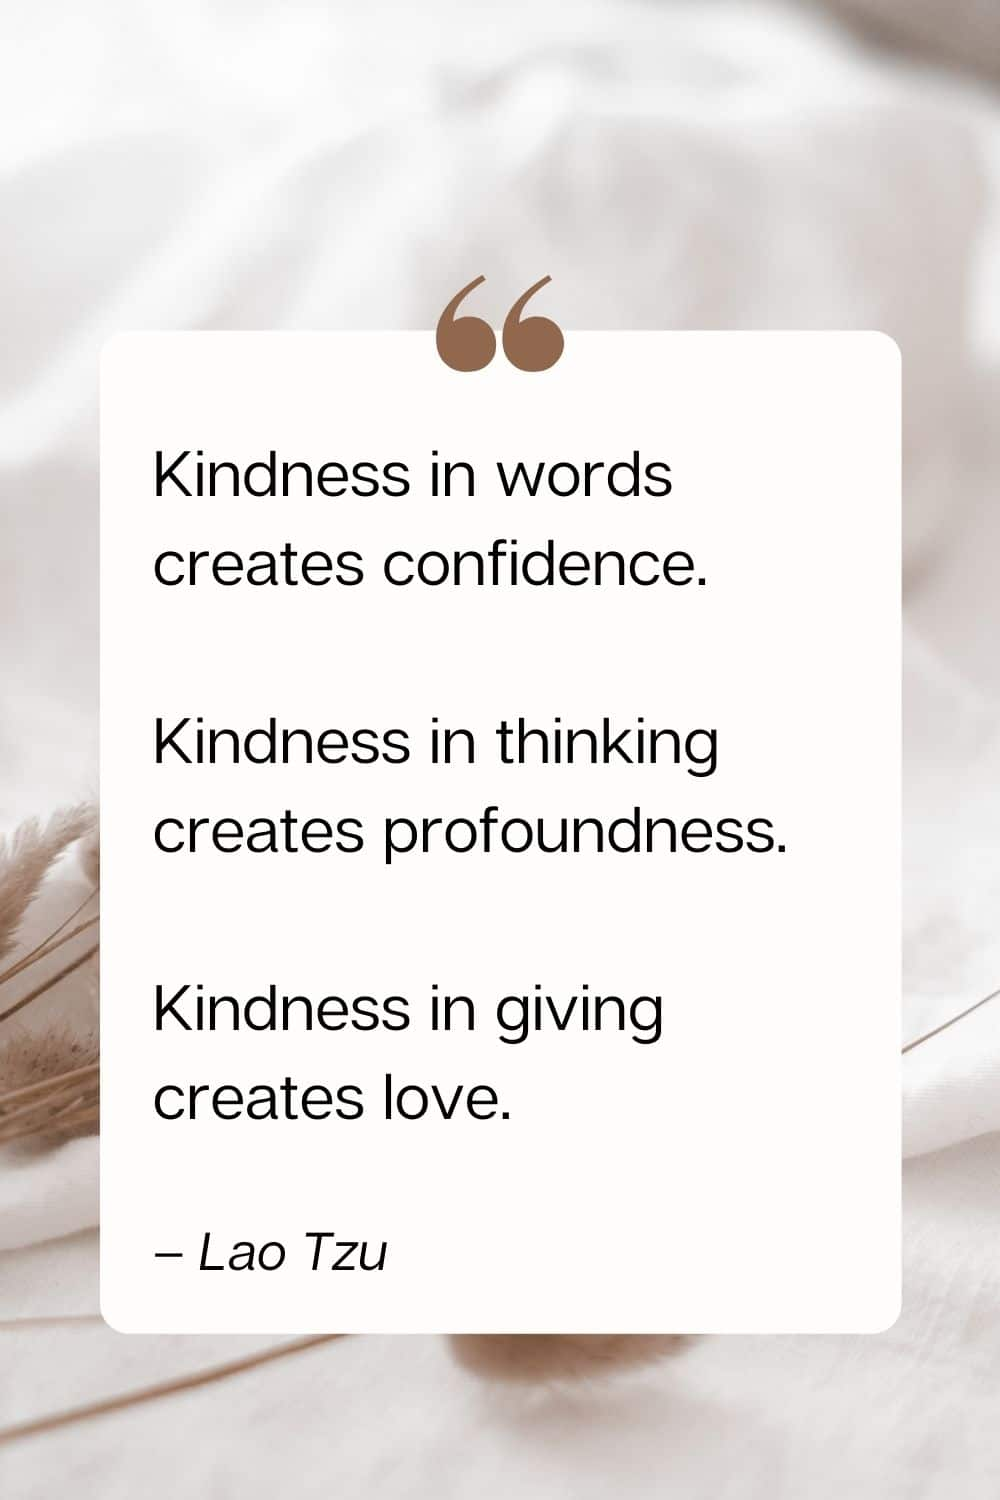 kindness quote - Kindness in words creates confidence. Kindness in thinking creates profoundness. Kindness in giving creates love. – Lao Tzu